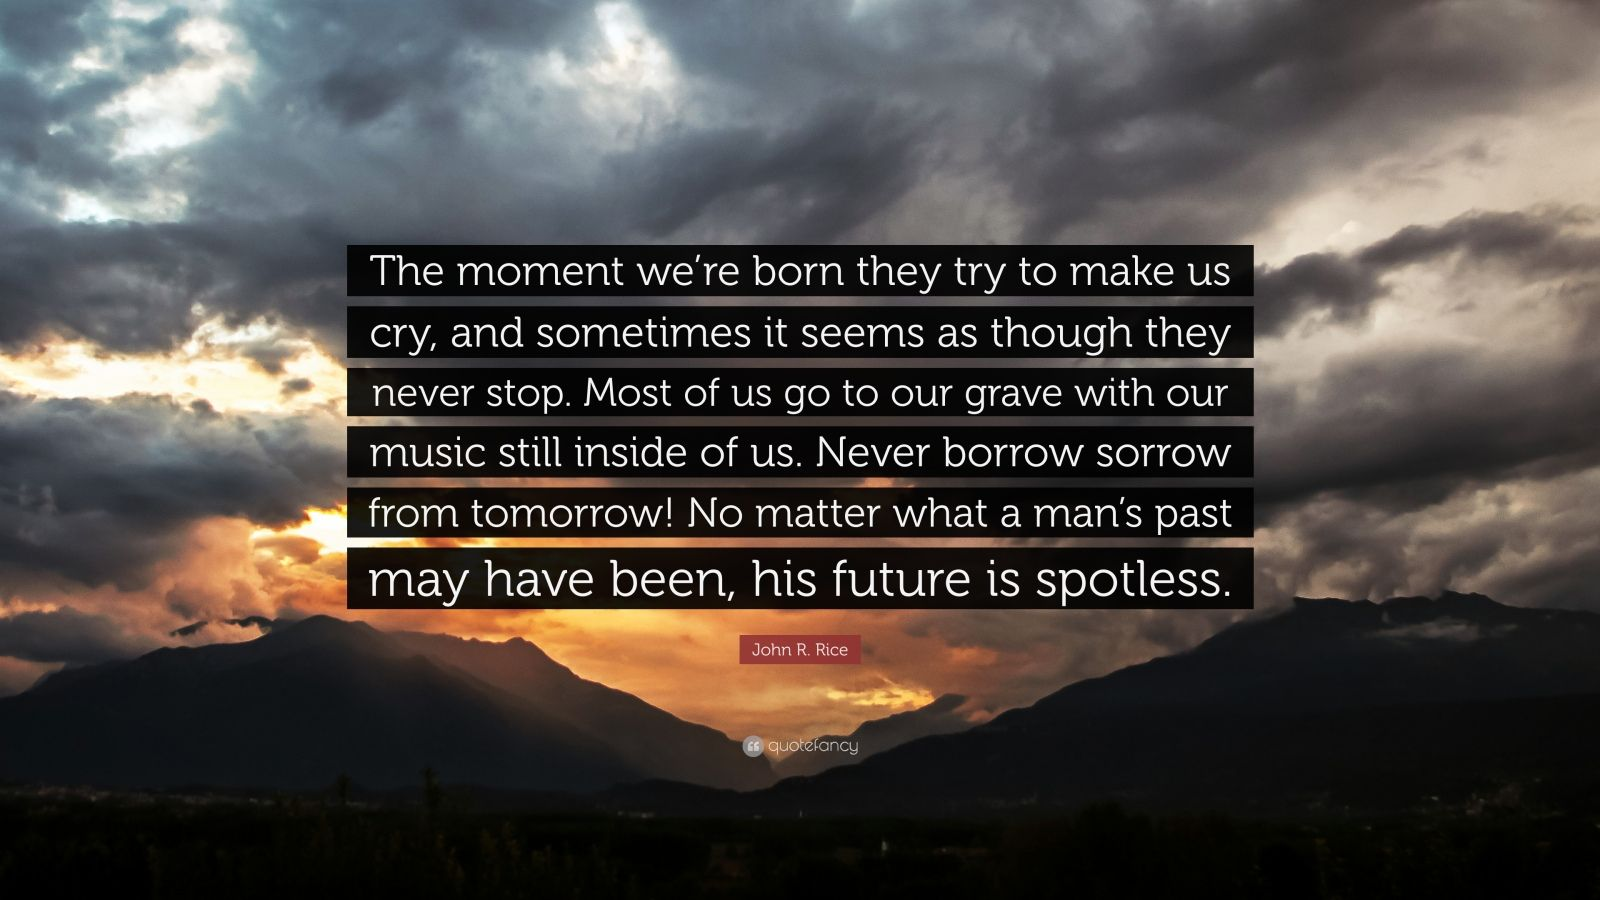 """John R. Rice Quote: """"The moment we're born they try to make us cry, and sometimes it seems as though they never stop. Most of us go to our grave with our music still inside of us. Never borrow sorrow from tomorrow! No matter what a man's past may have been, his future is spotless."""""""